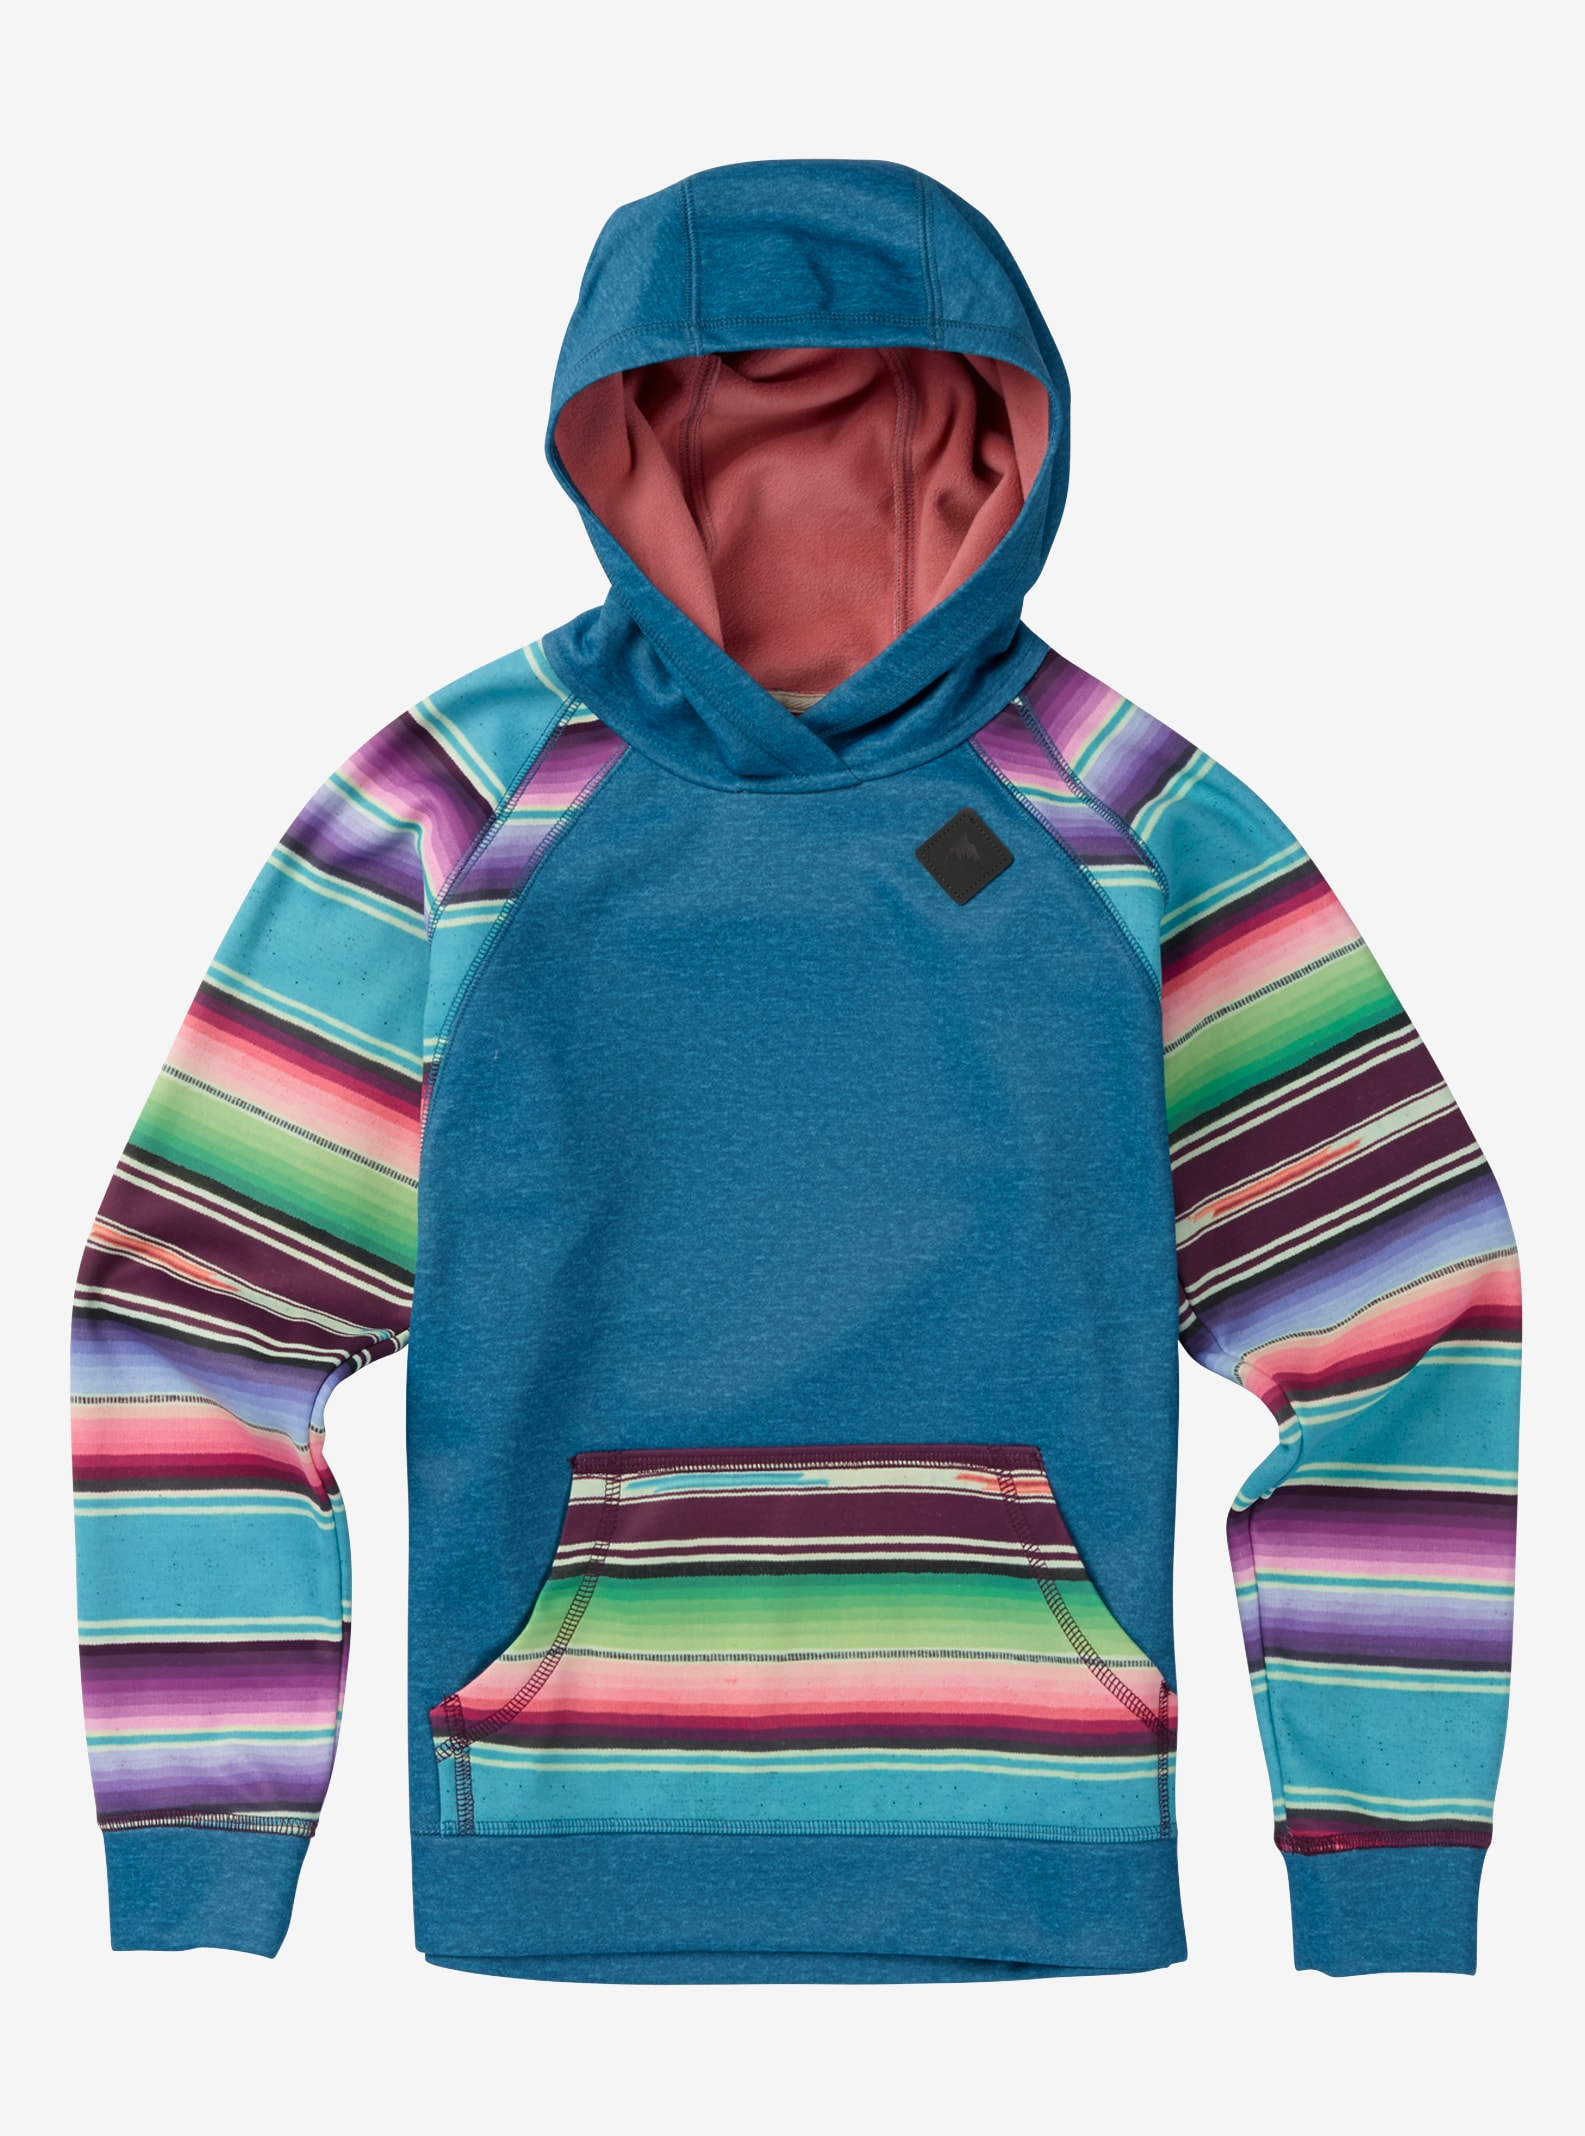 Girls' Burton Heron Pullover Hoodie shown in Larkspur / Mojave Stripe